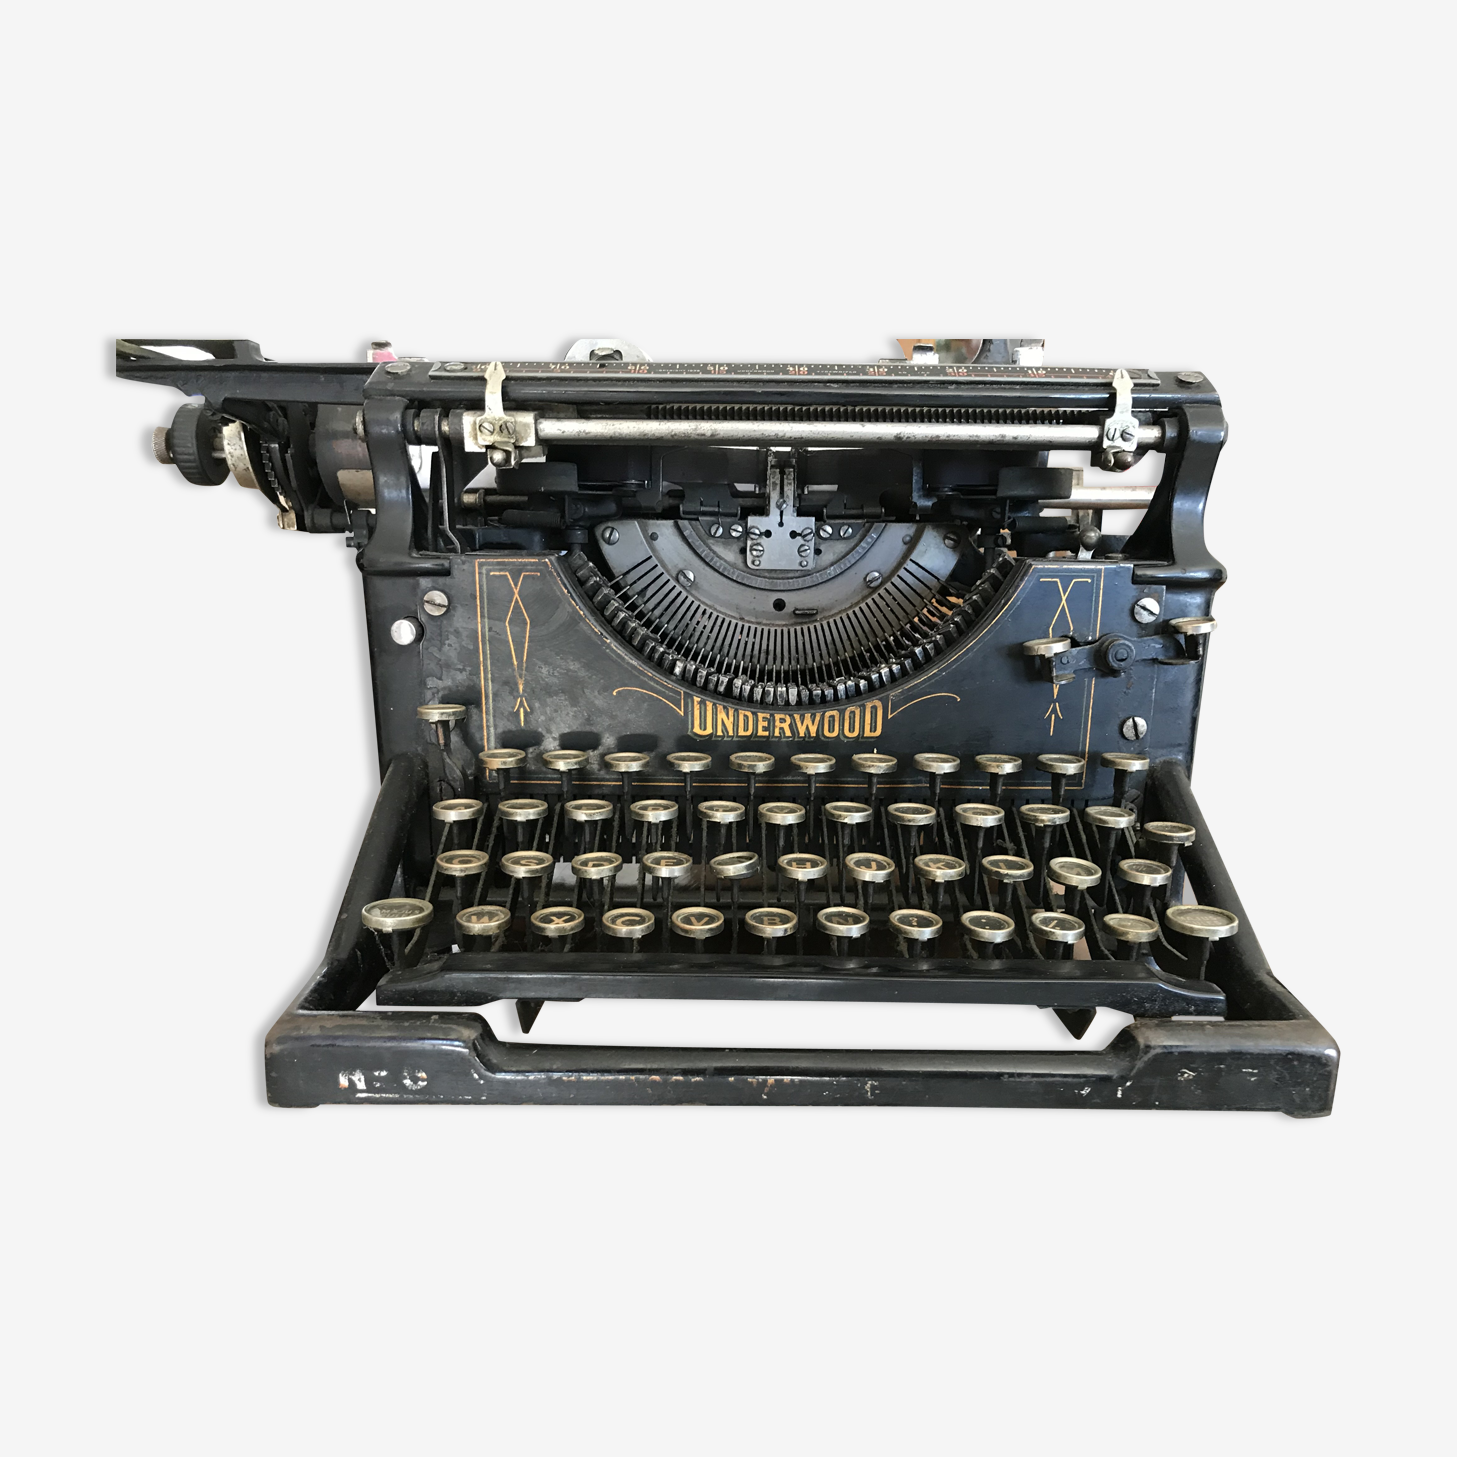 Underwood Azerty typewriter n°5, 1904